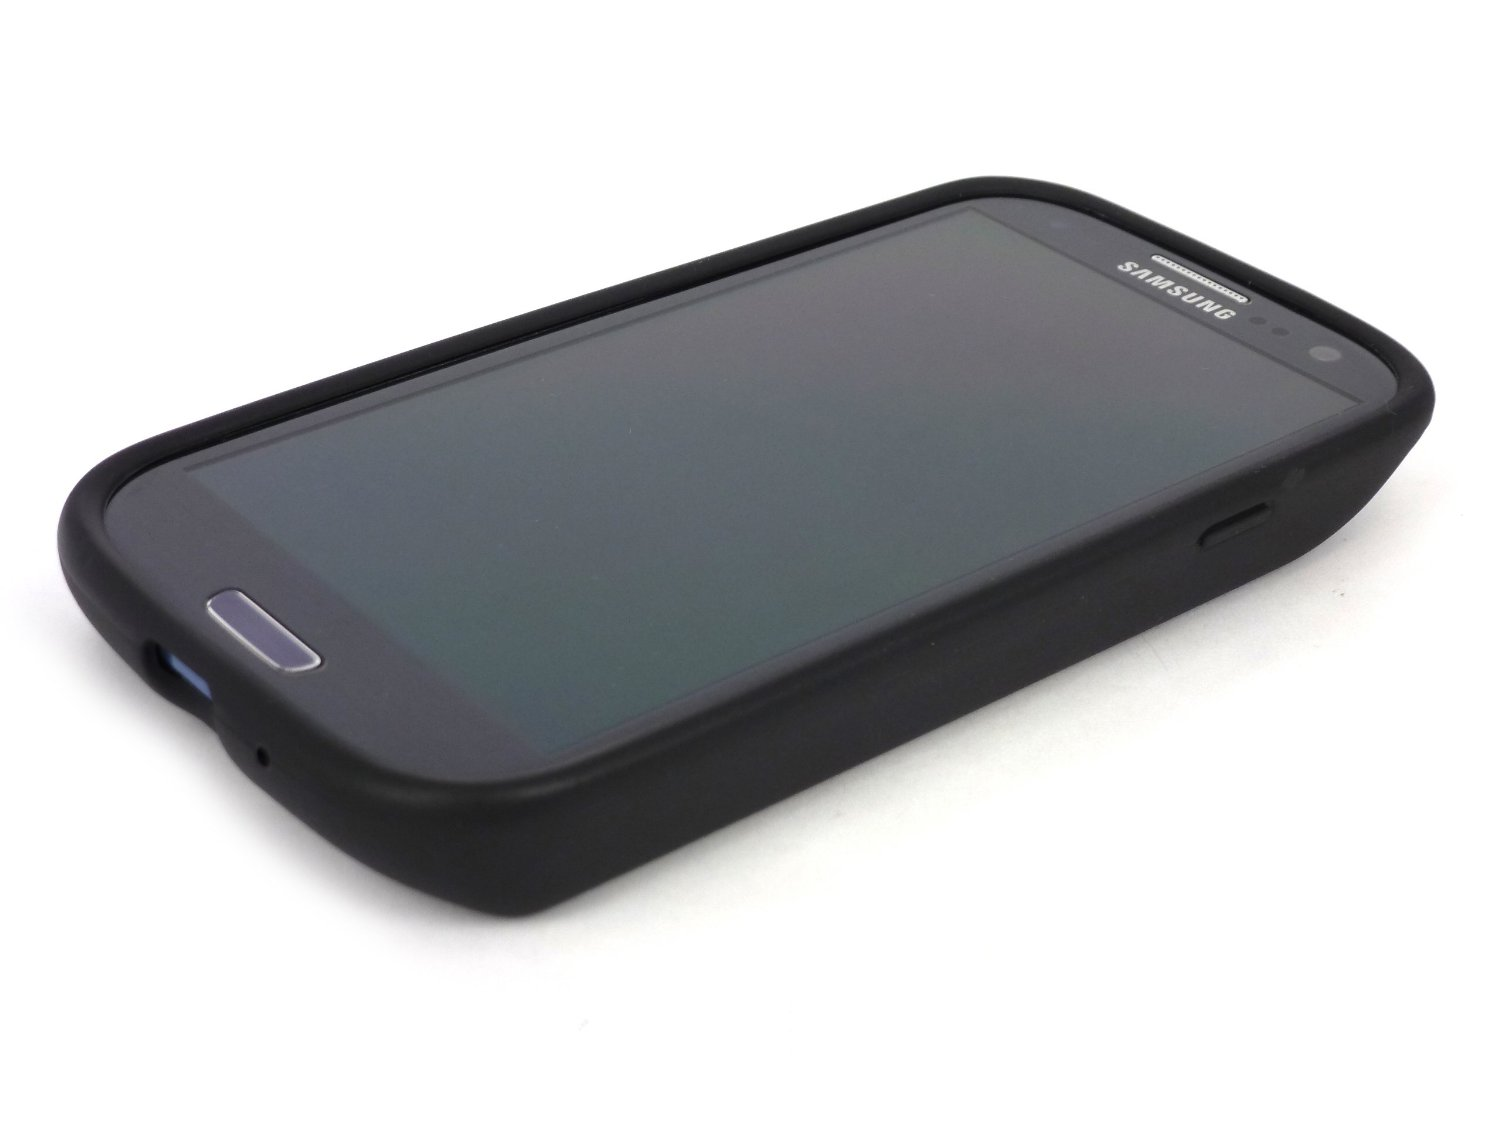 galaxy s3 extended battery offers long battery life but adds bulk